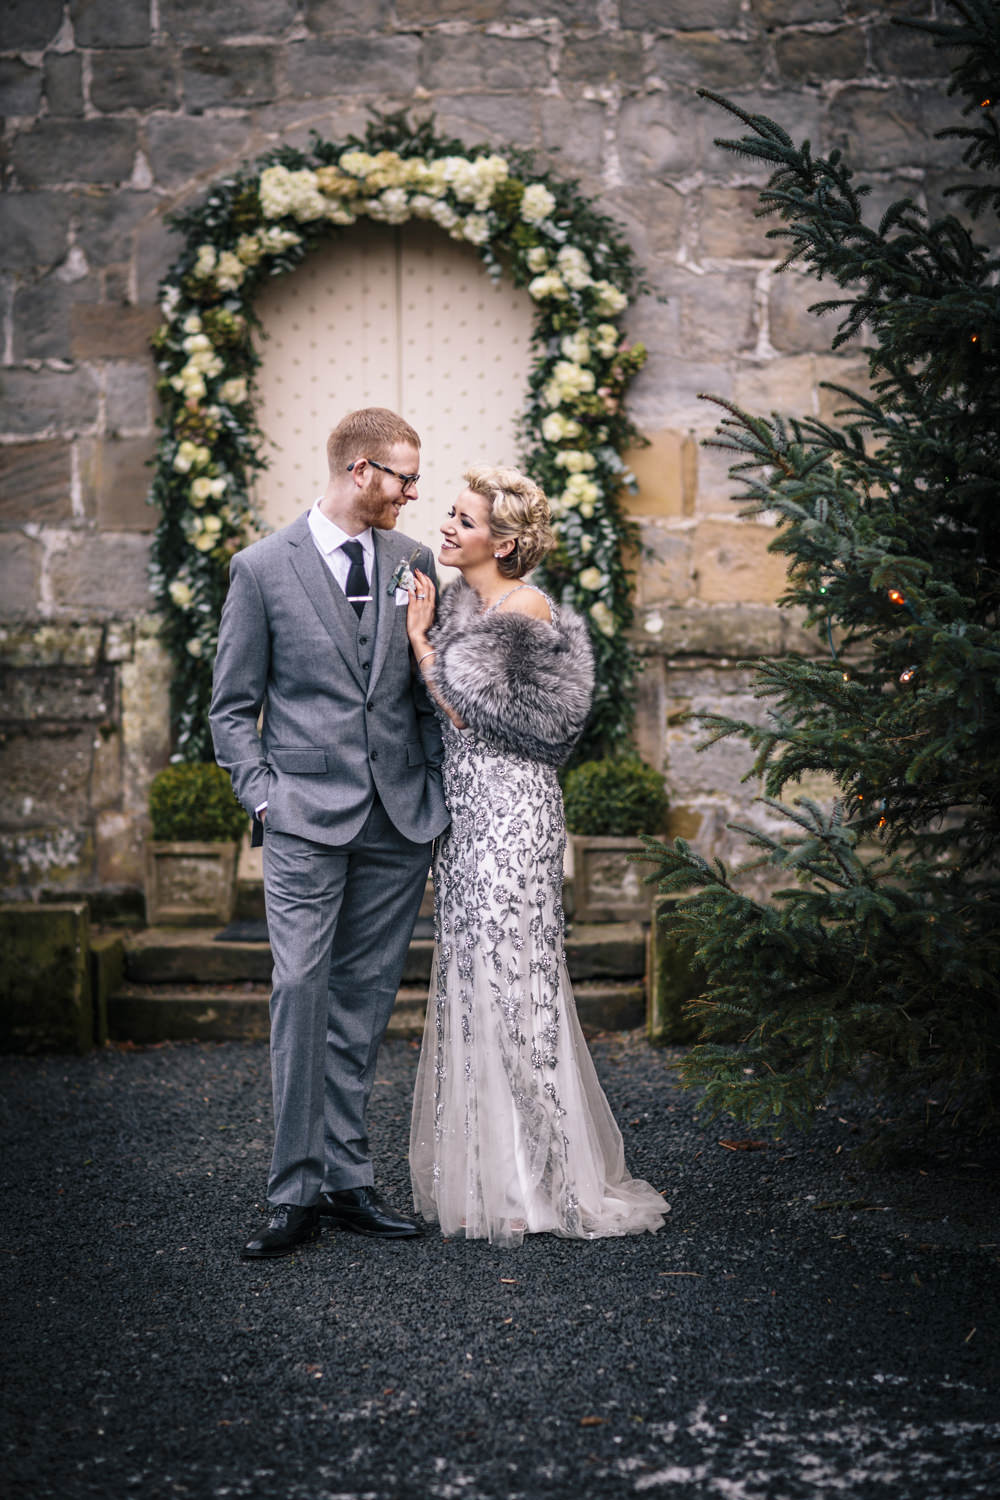 An Eliza Jane Howell dress for a Winter candlelit wedding at ...